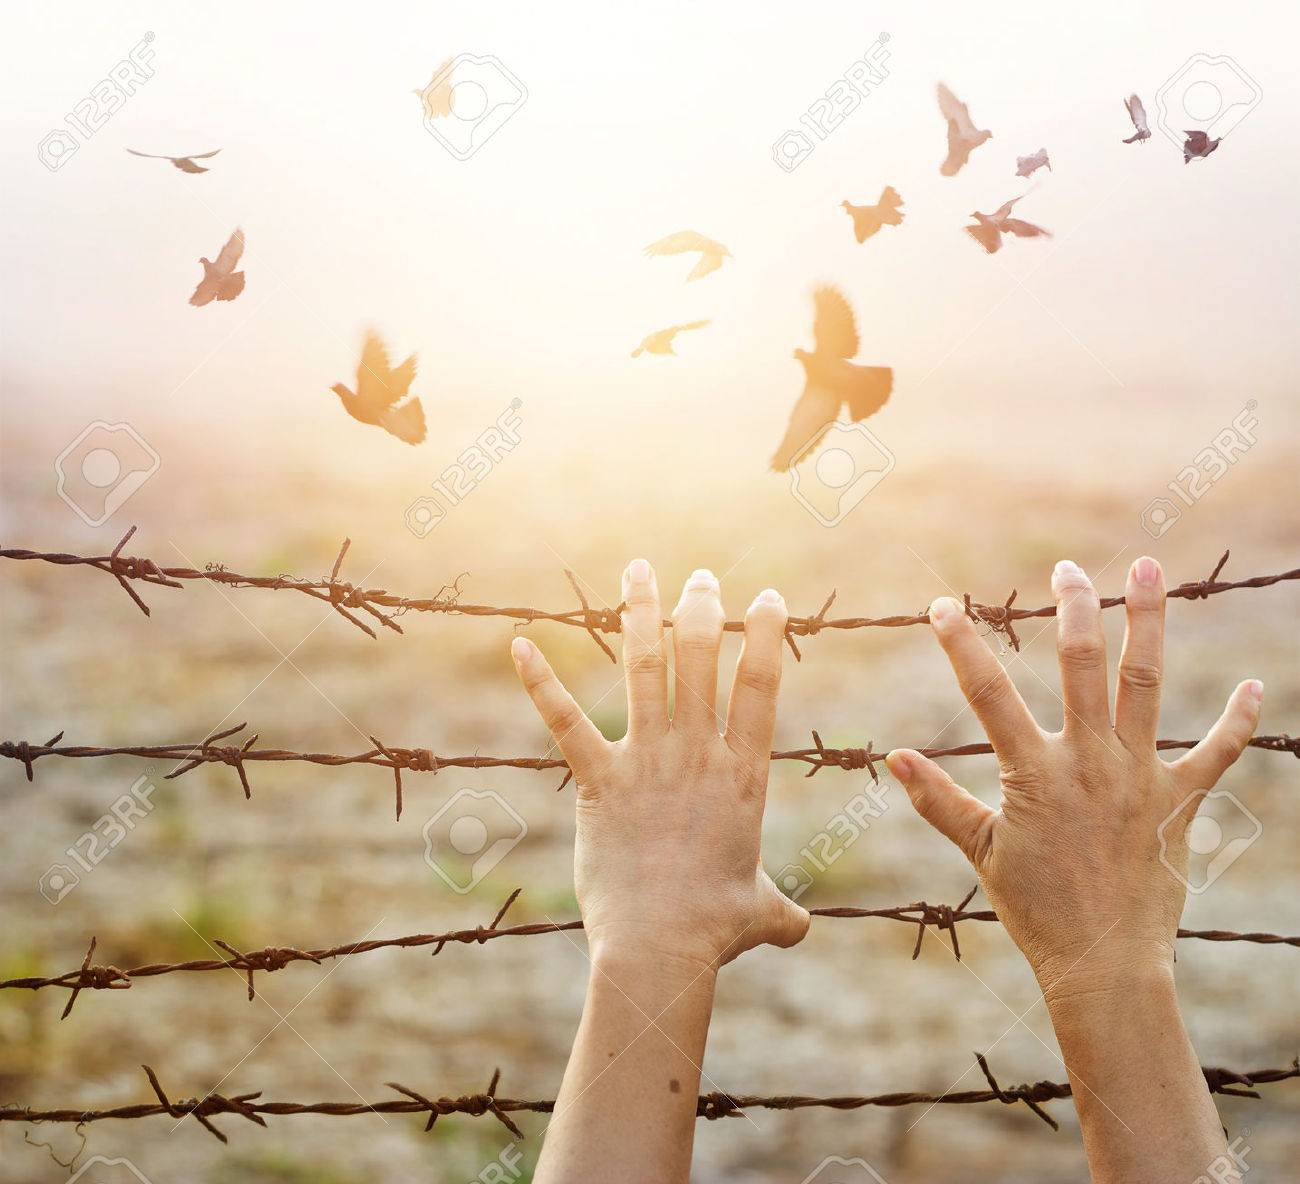 Woman hands hold the rusty sharp bare wire with hope longing for freedom among flying birds, Human rights concept Standard-Bild - 65036599